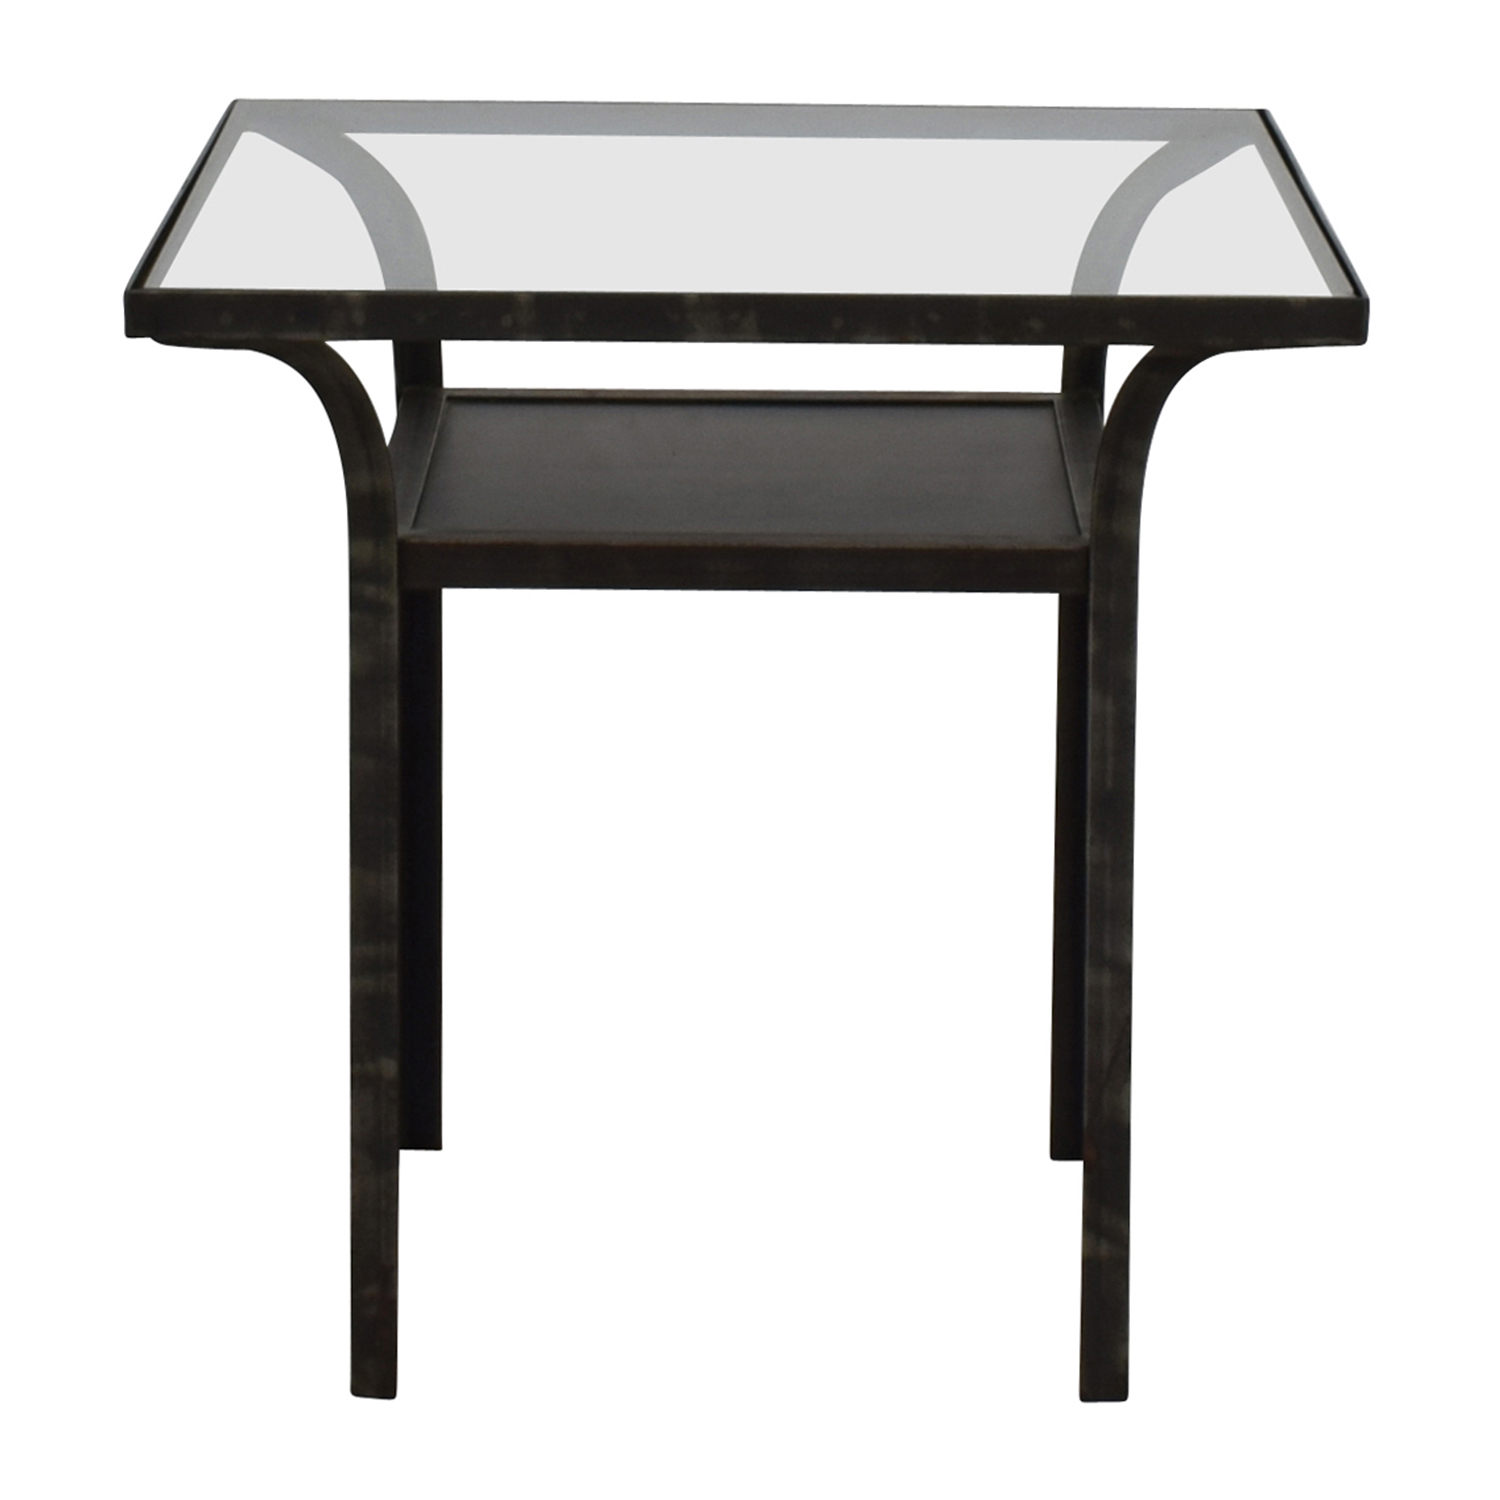 80% OFF Thomasville Thomasville Bogart Collection End Tables